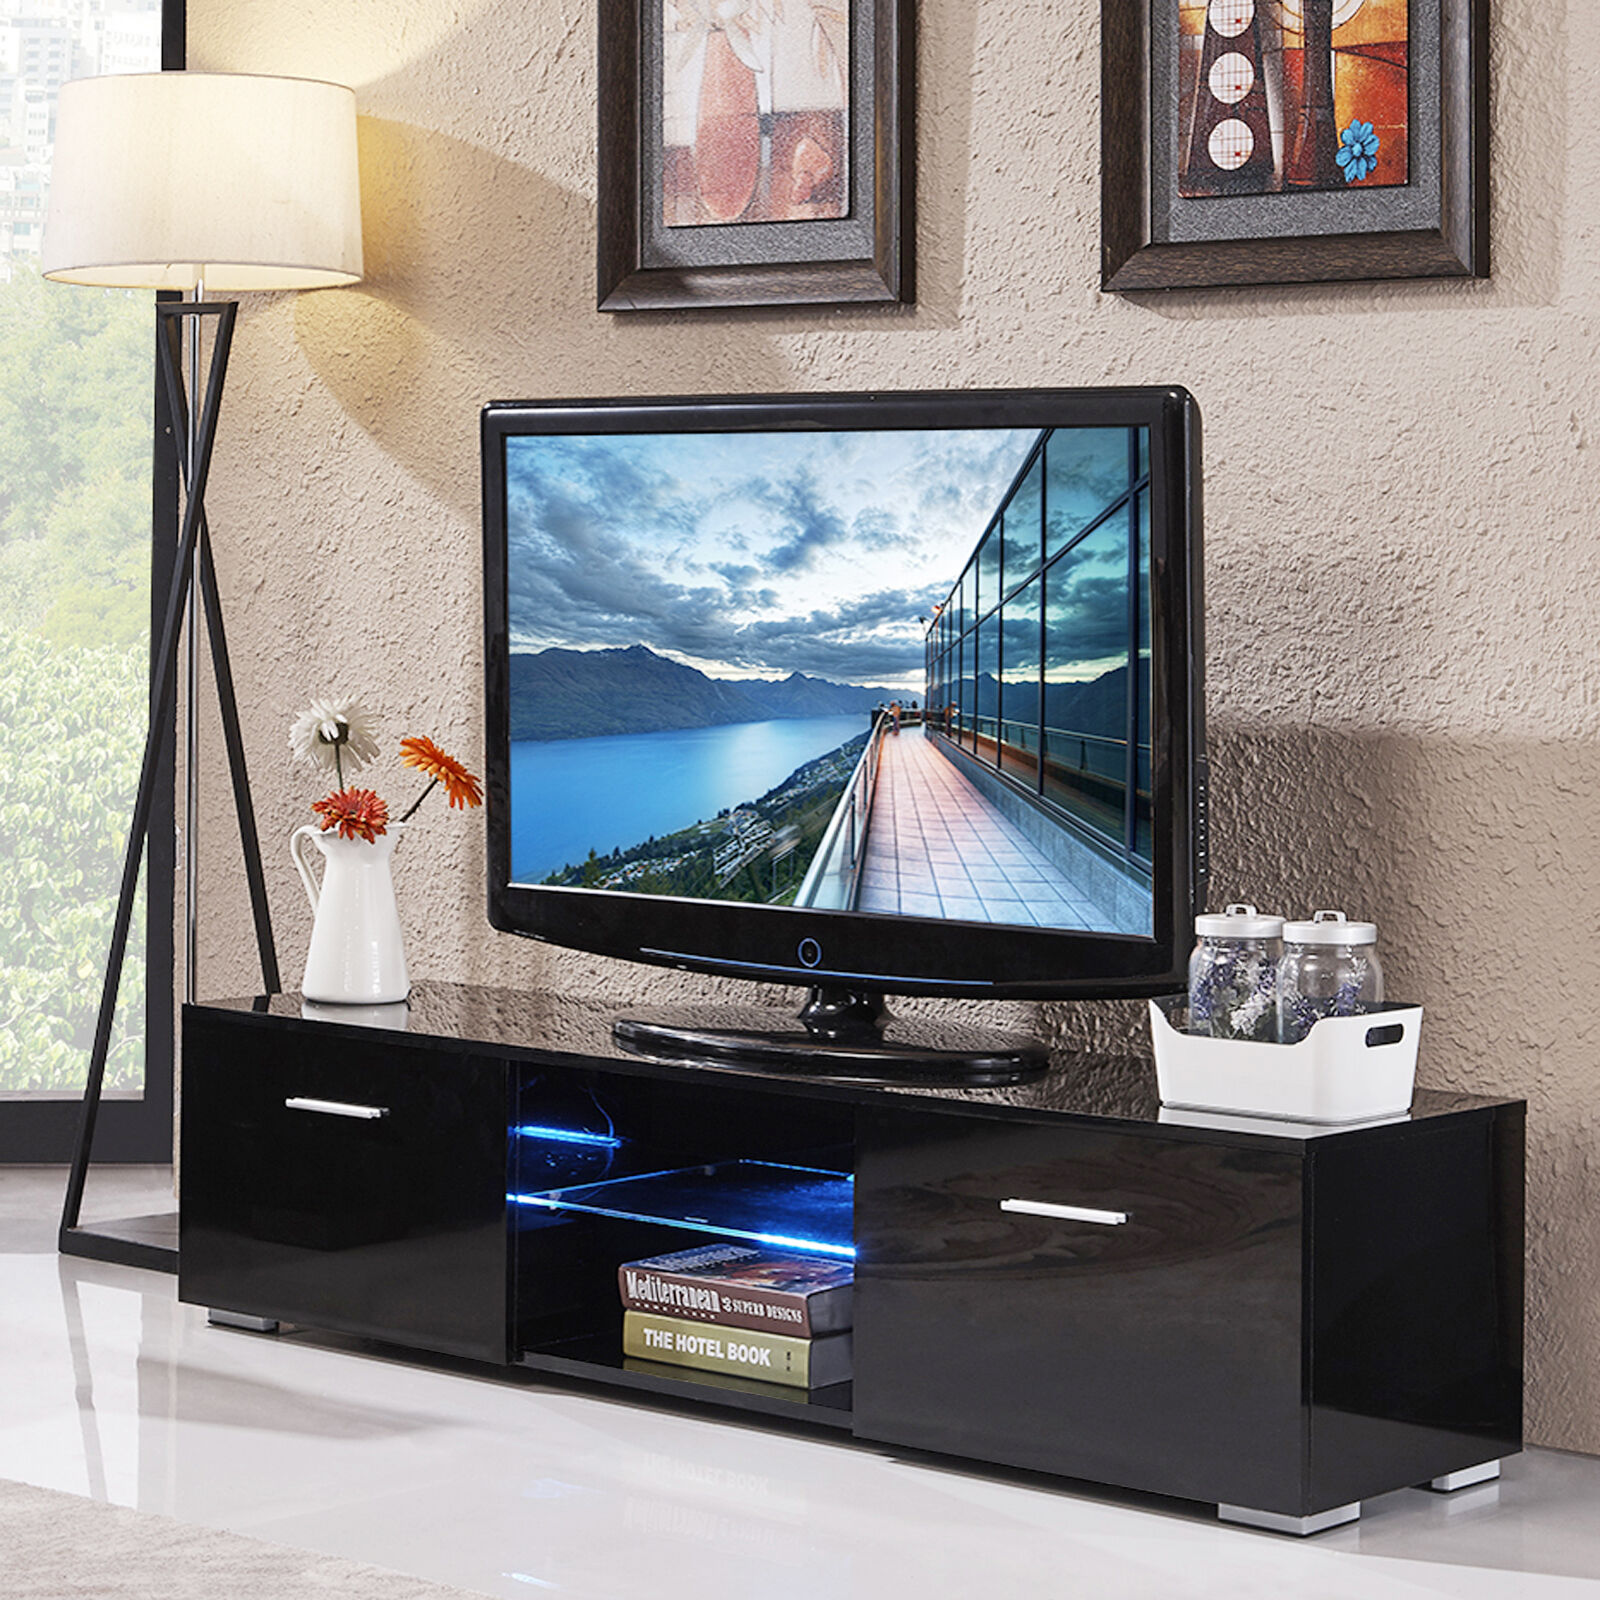 Black High Gloss Tv Stand Unit Cabinet Console Furniturew Led Shelves 2 Drawers